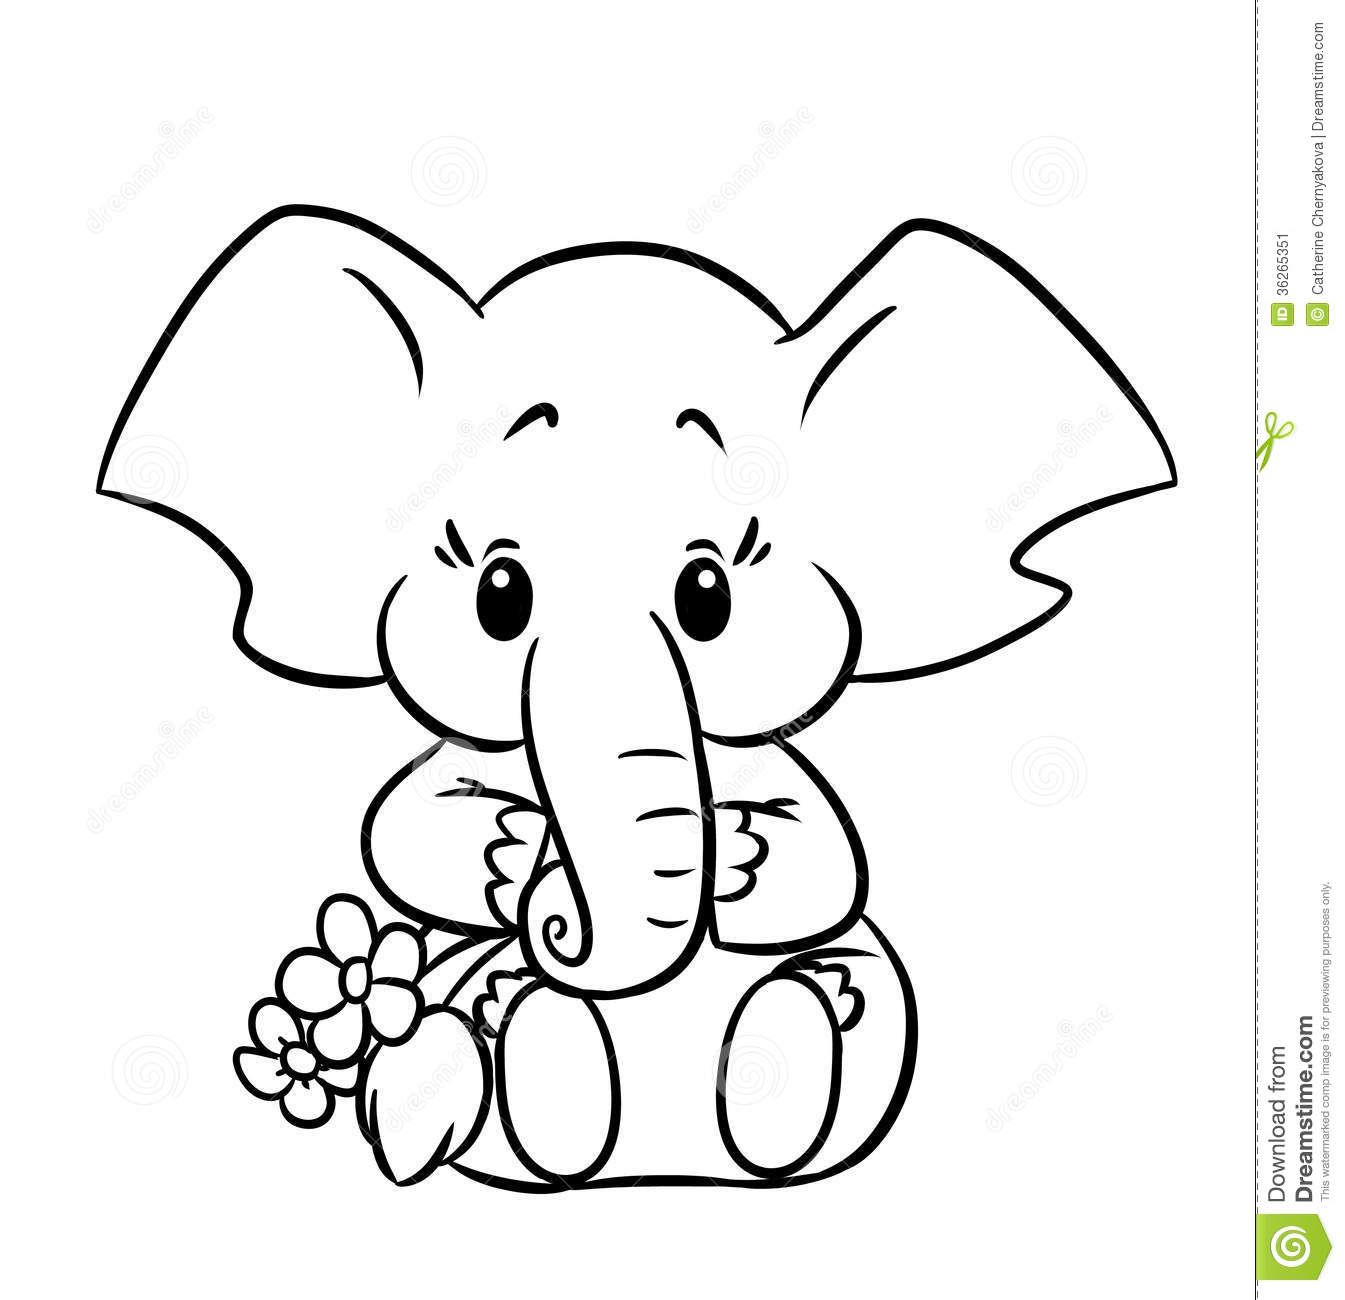 elephant coloring pages pinterest tumblr google yahoo imgur wallpapers elephant coloring pages images